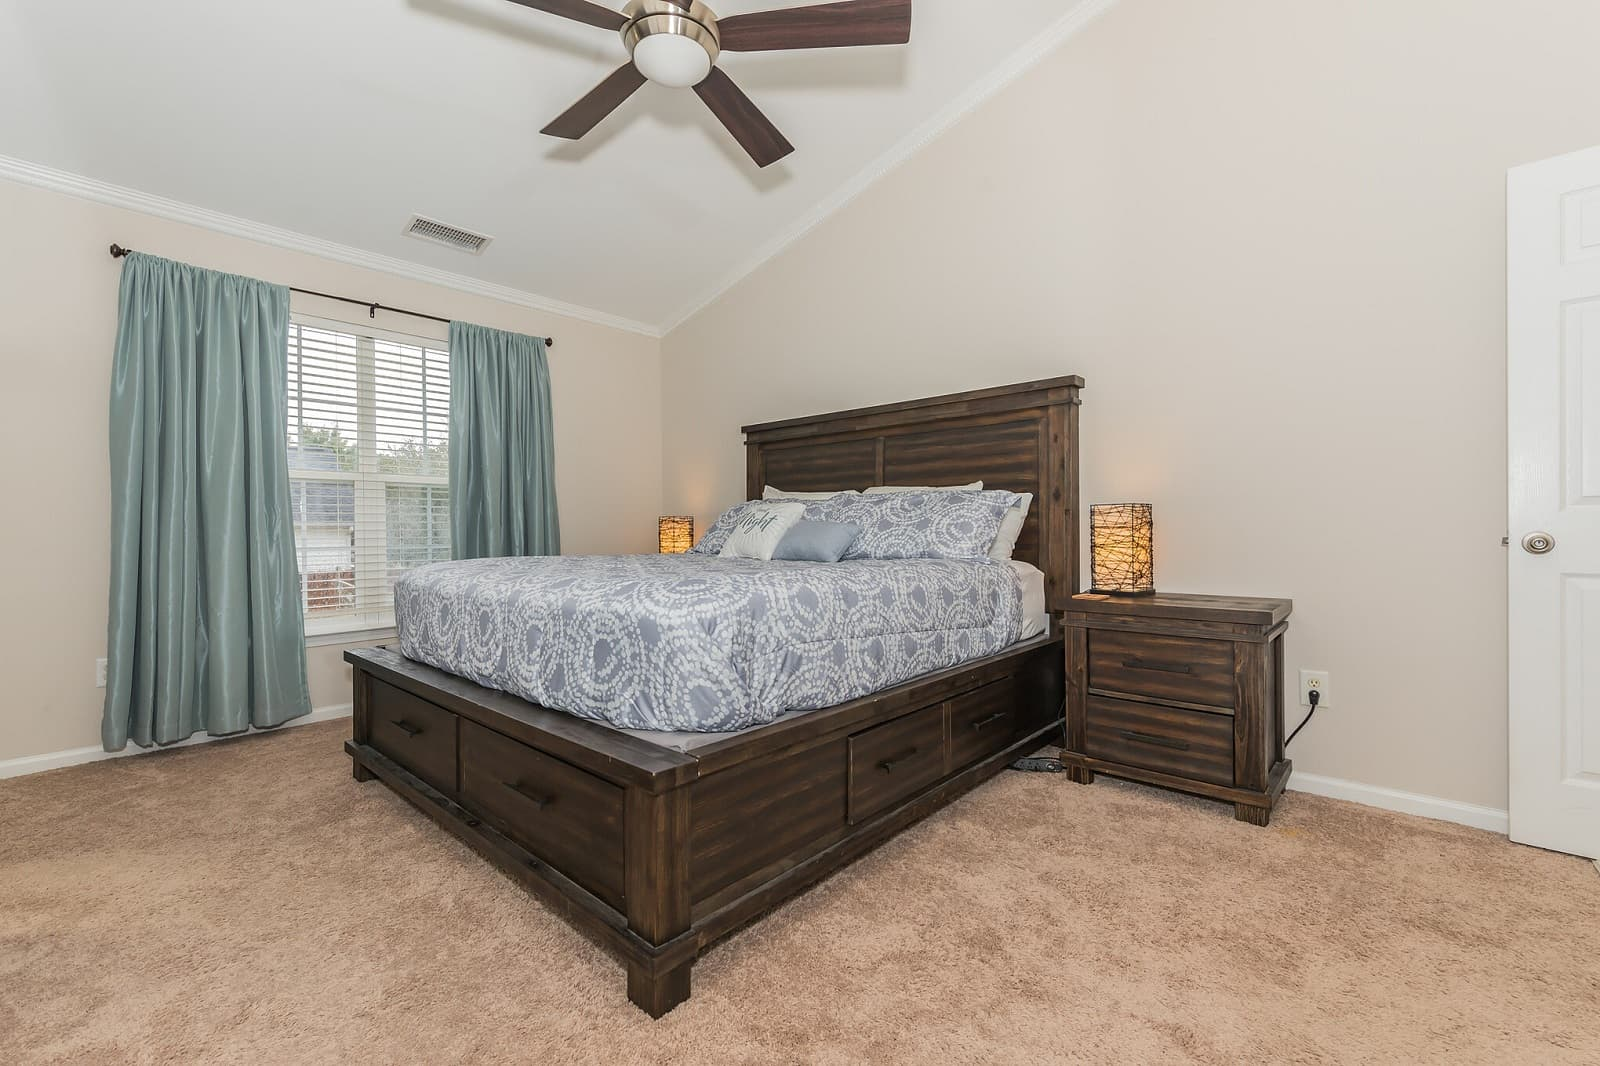 Real Estate Photography in Charlotte - NC - USA - Bedroom View